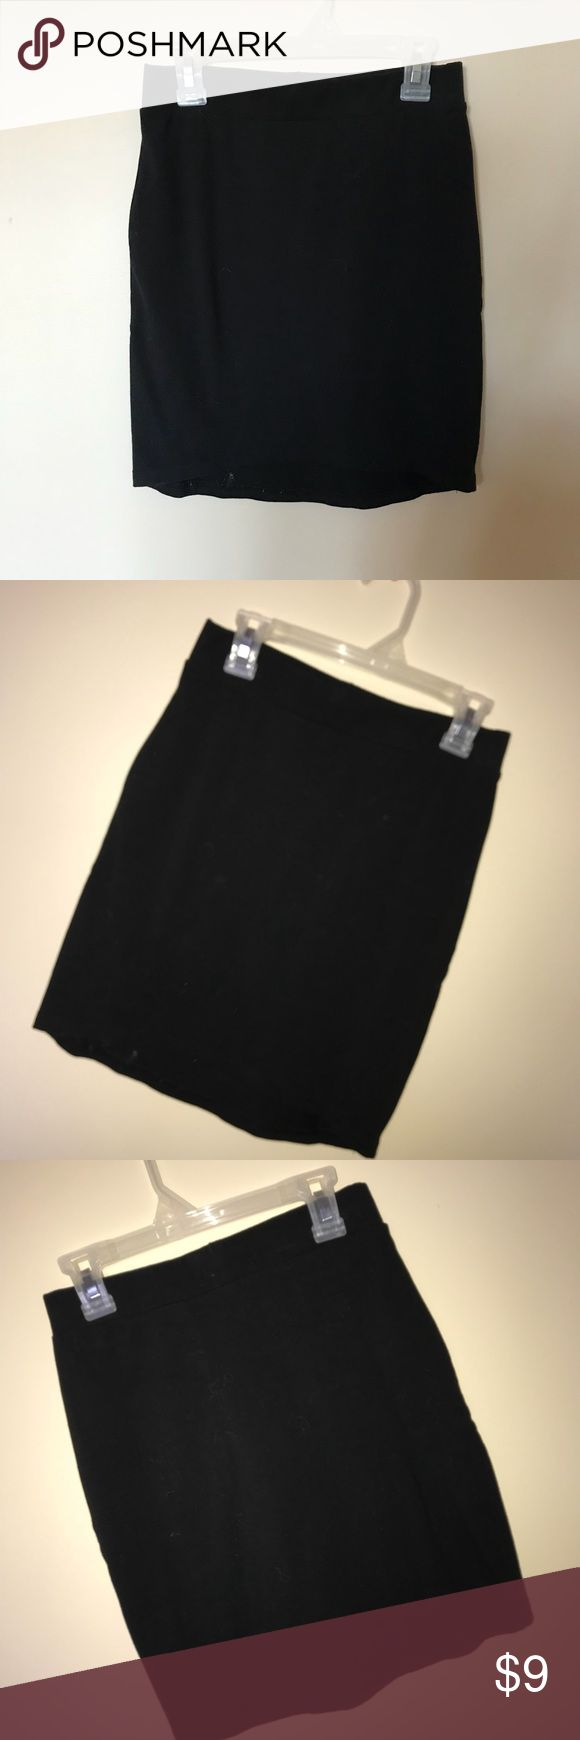 Skirt Brand new, tight black skirt, perfect to go out on a Saturday night. H&M Skirts Mini